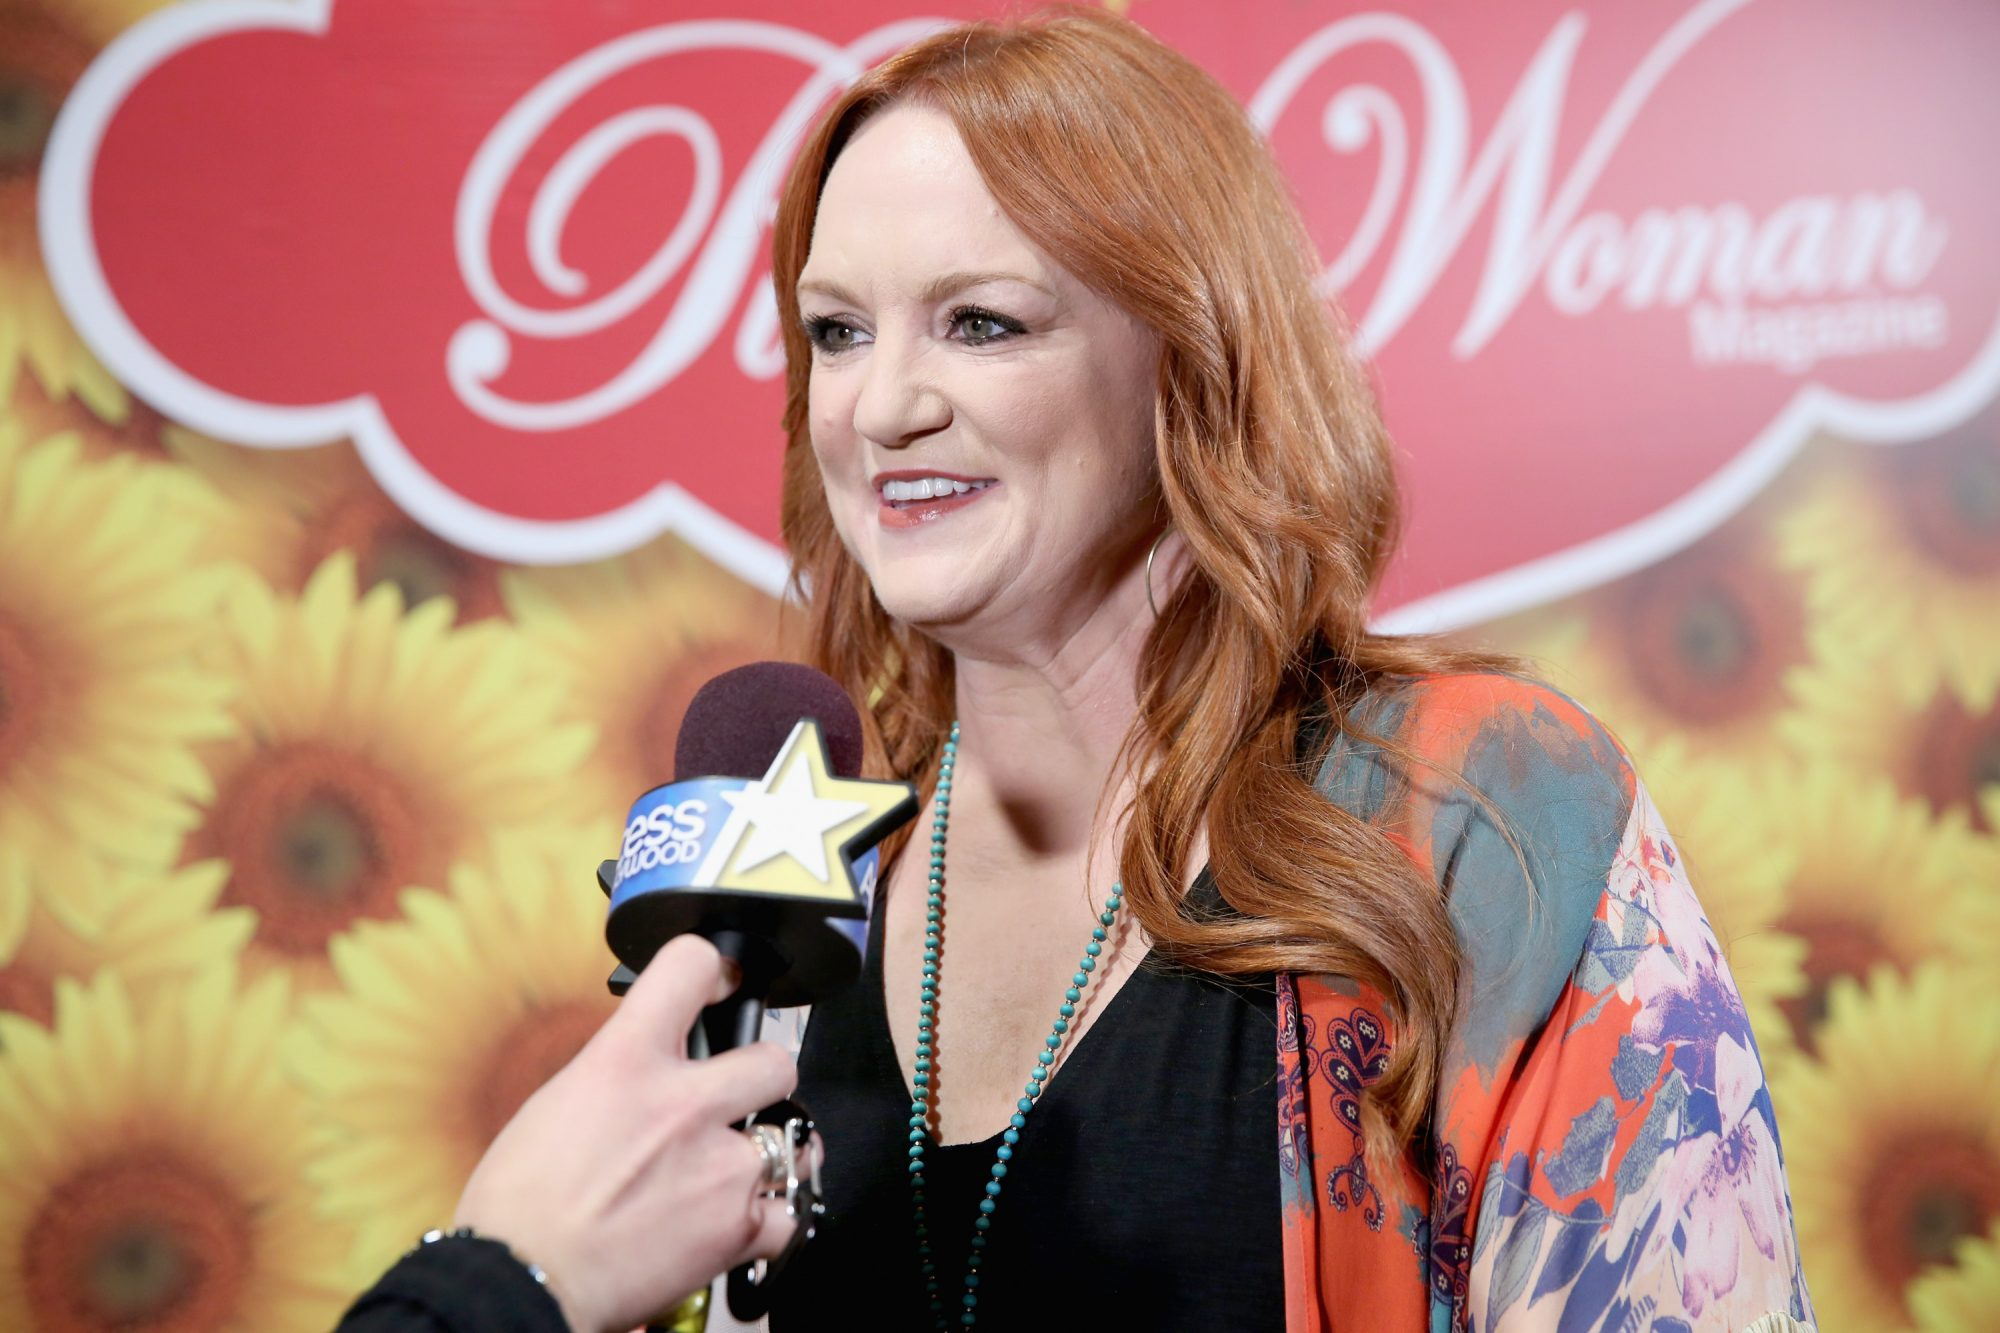 Ree Drummond The Pioneer Woman Magazine Celebration with Ree Drummond